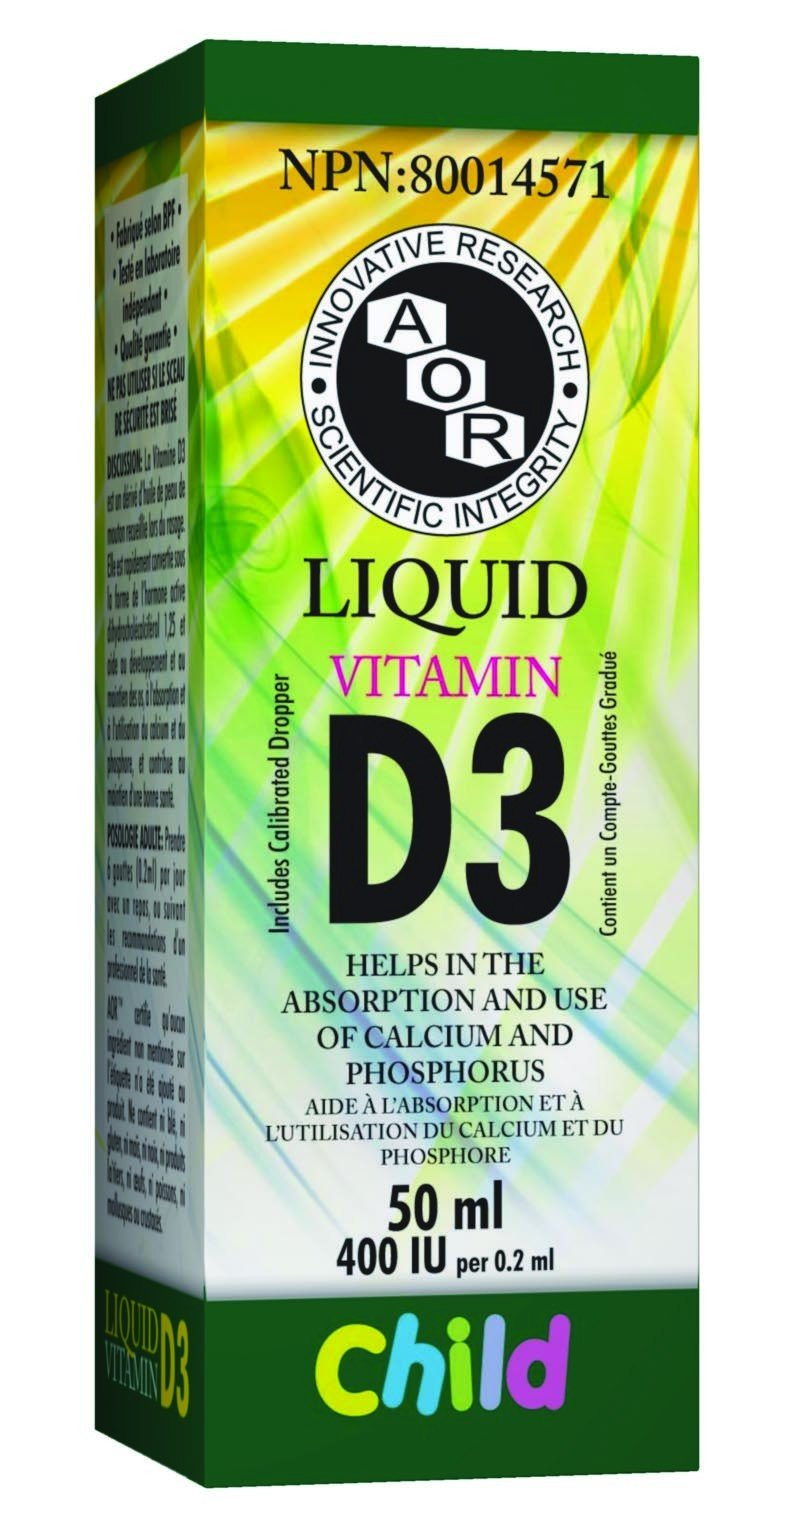 Vitamin D Not Just For Bones Anymore